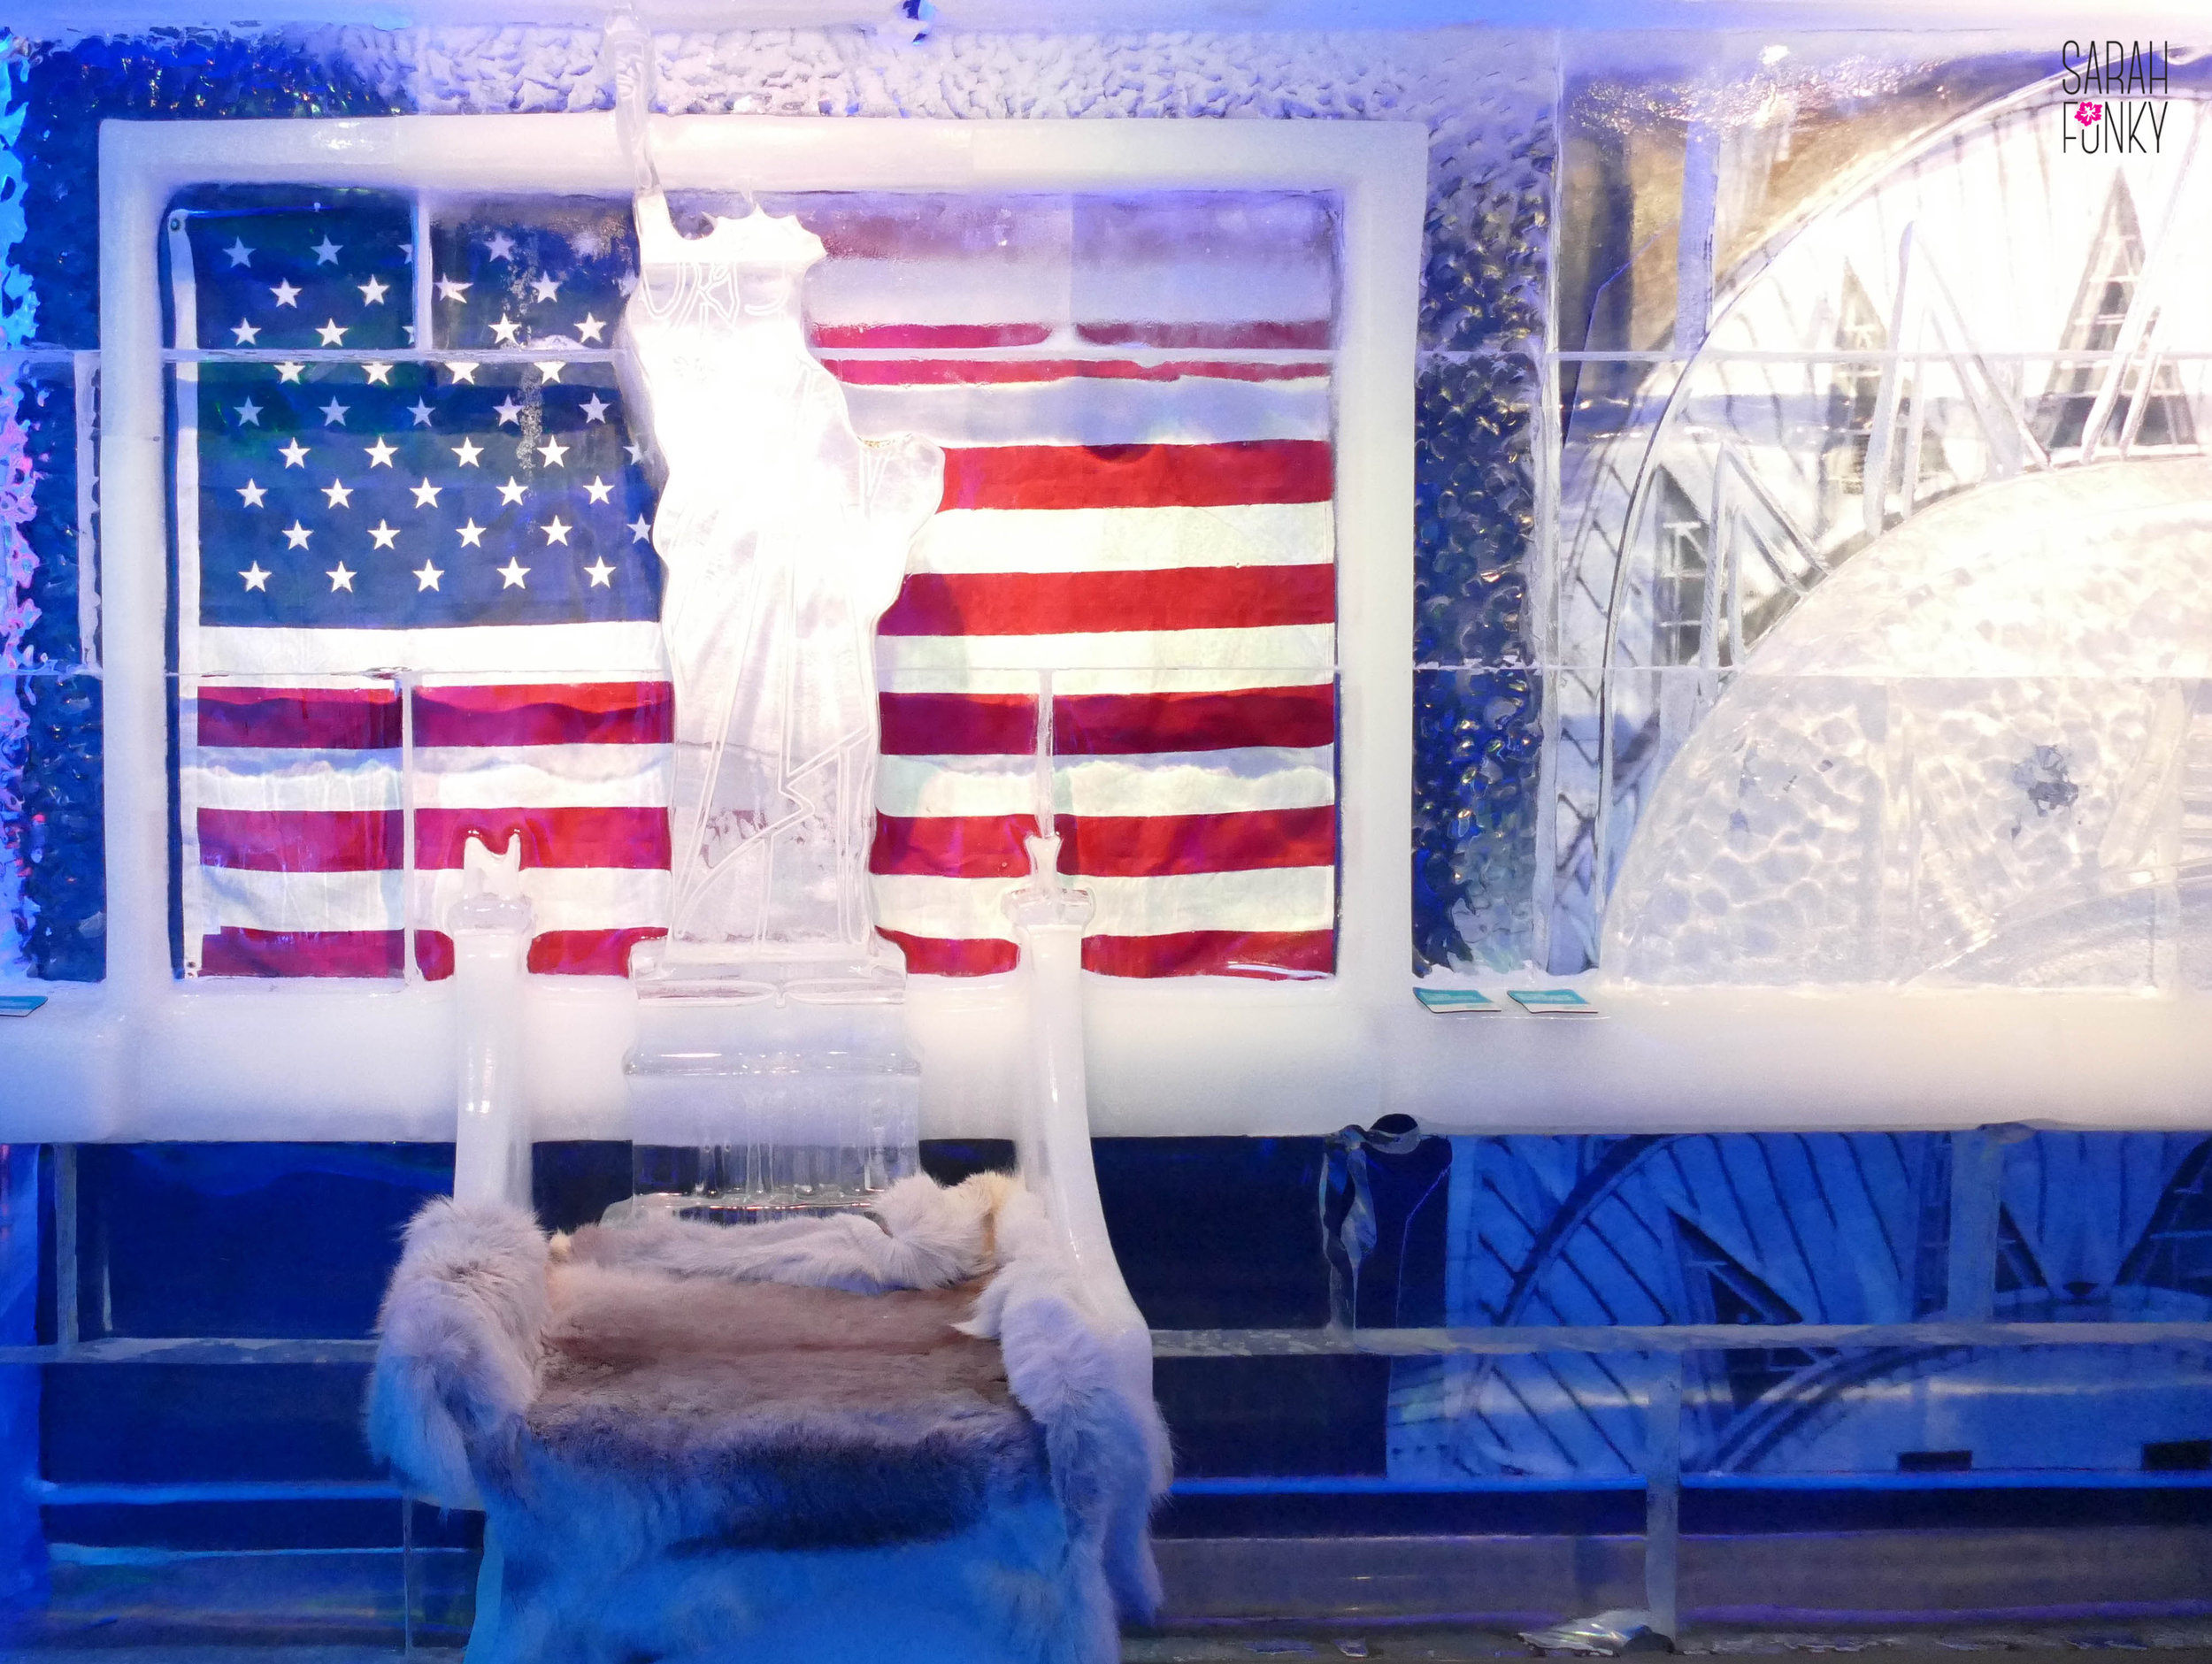 The fitting embodiment New York winters: iconic hallmarks of the city frozen in ice blocks